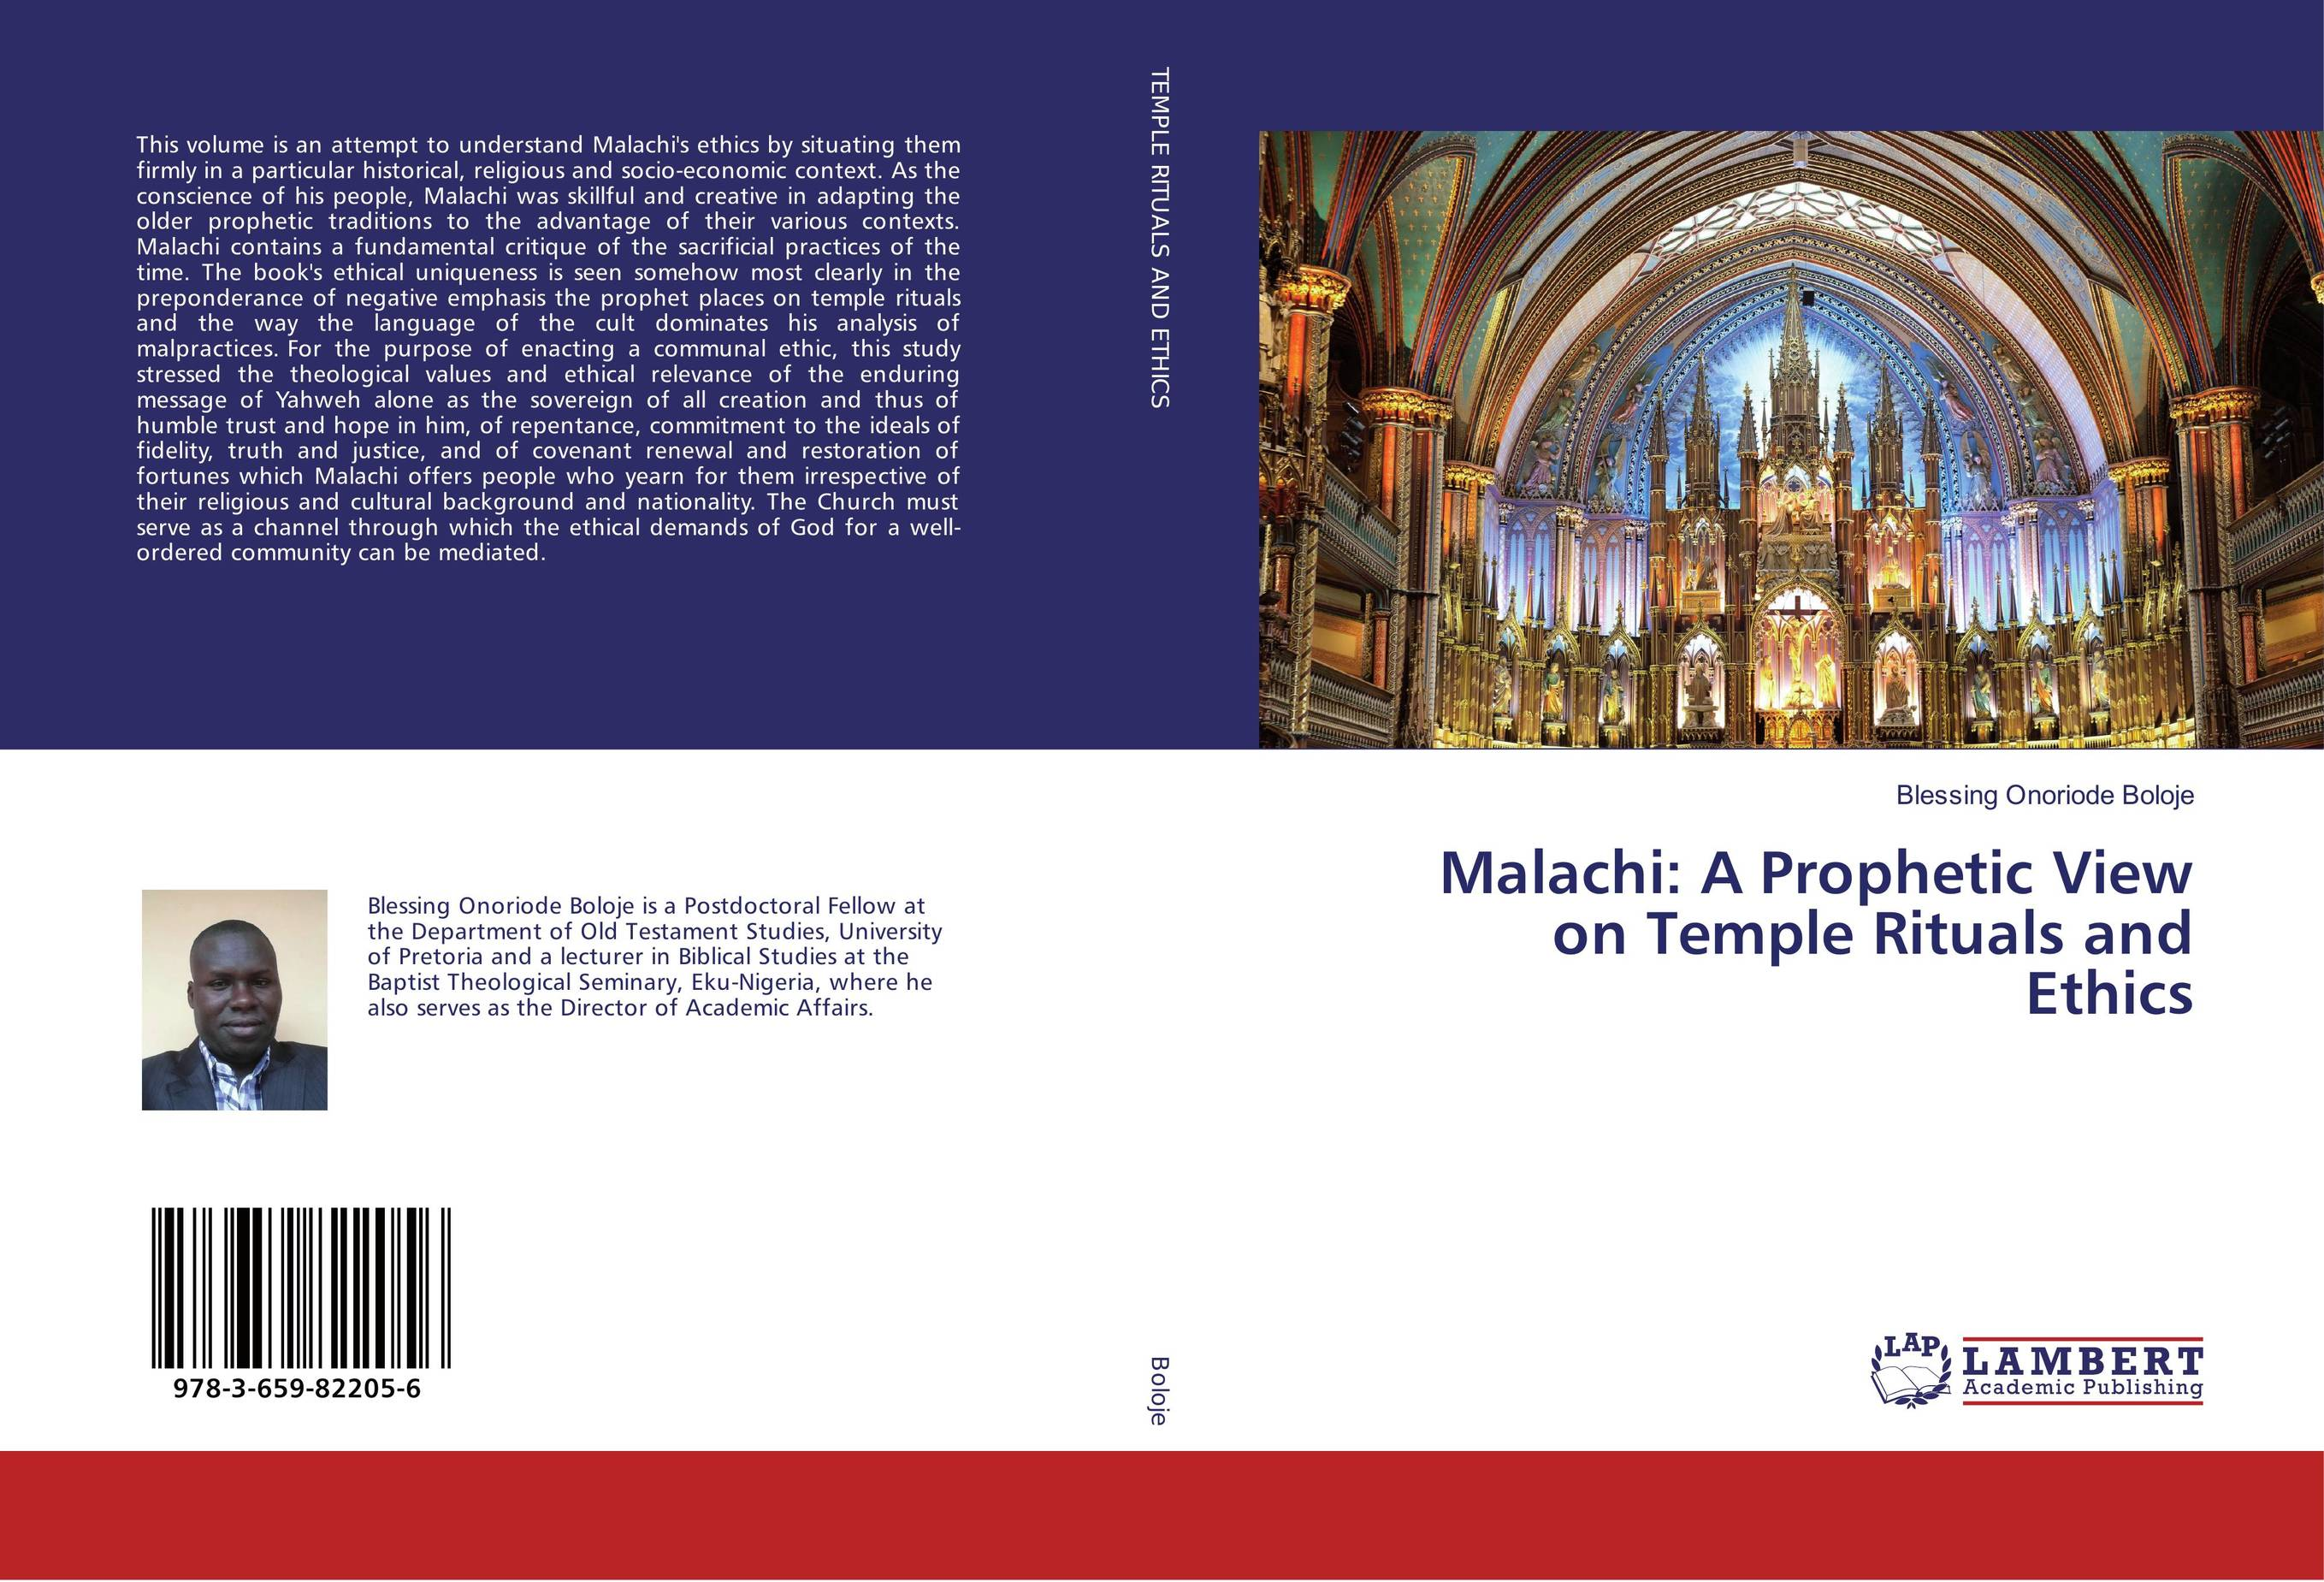 Malachi: A Prophetic View on Temple Rituals and Ethics magformers магнитный конструктор creative 90